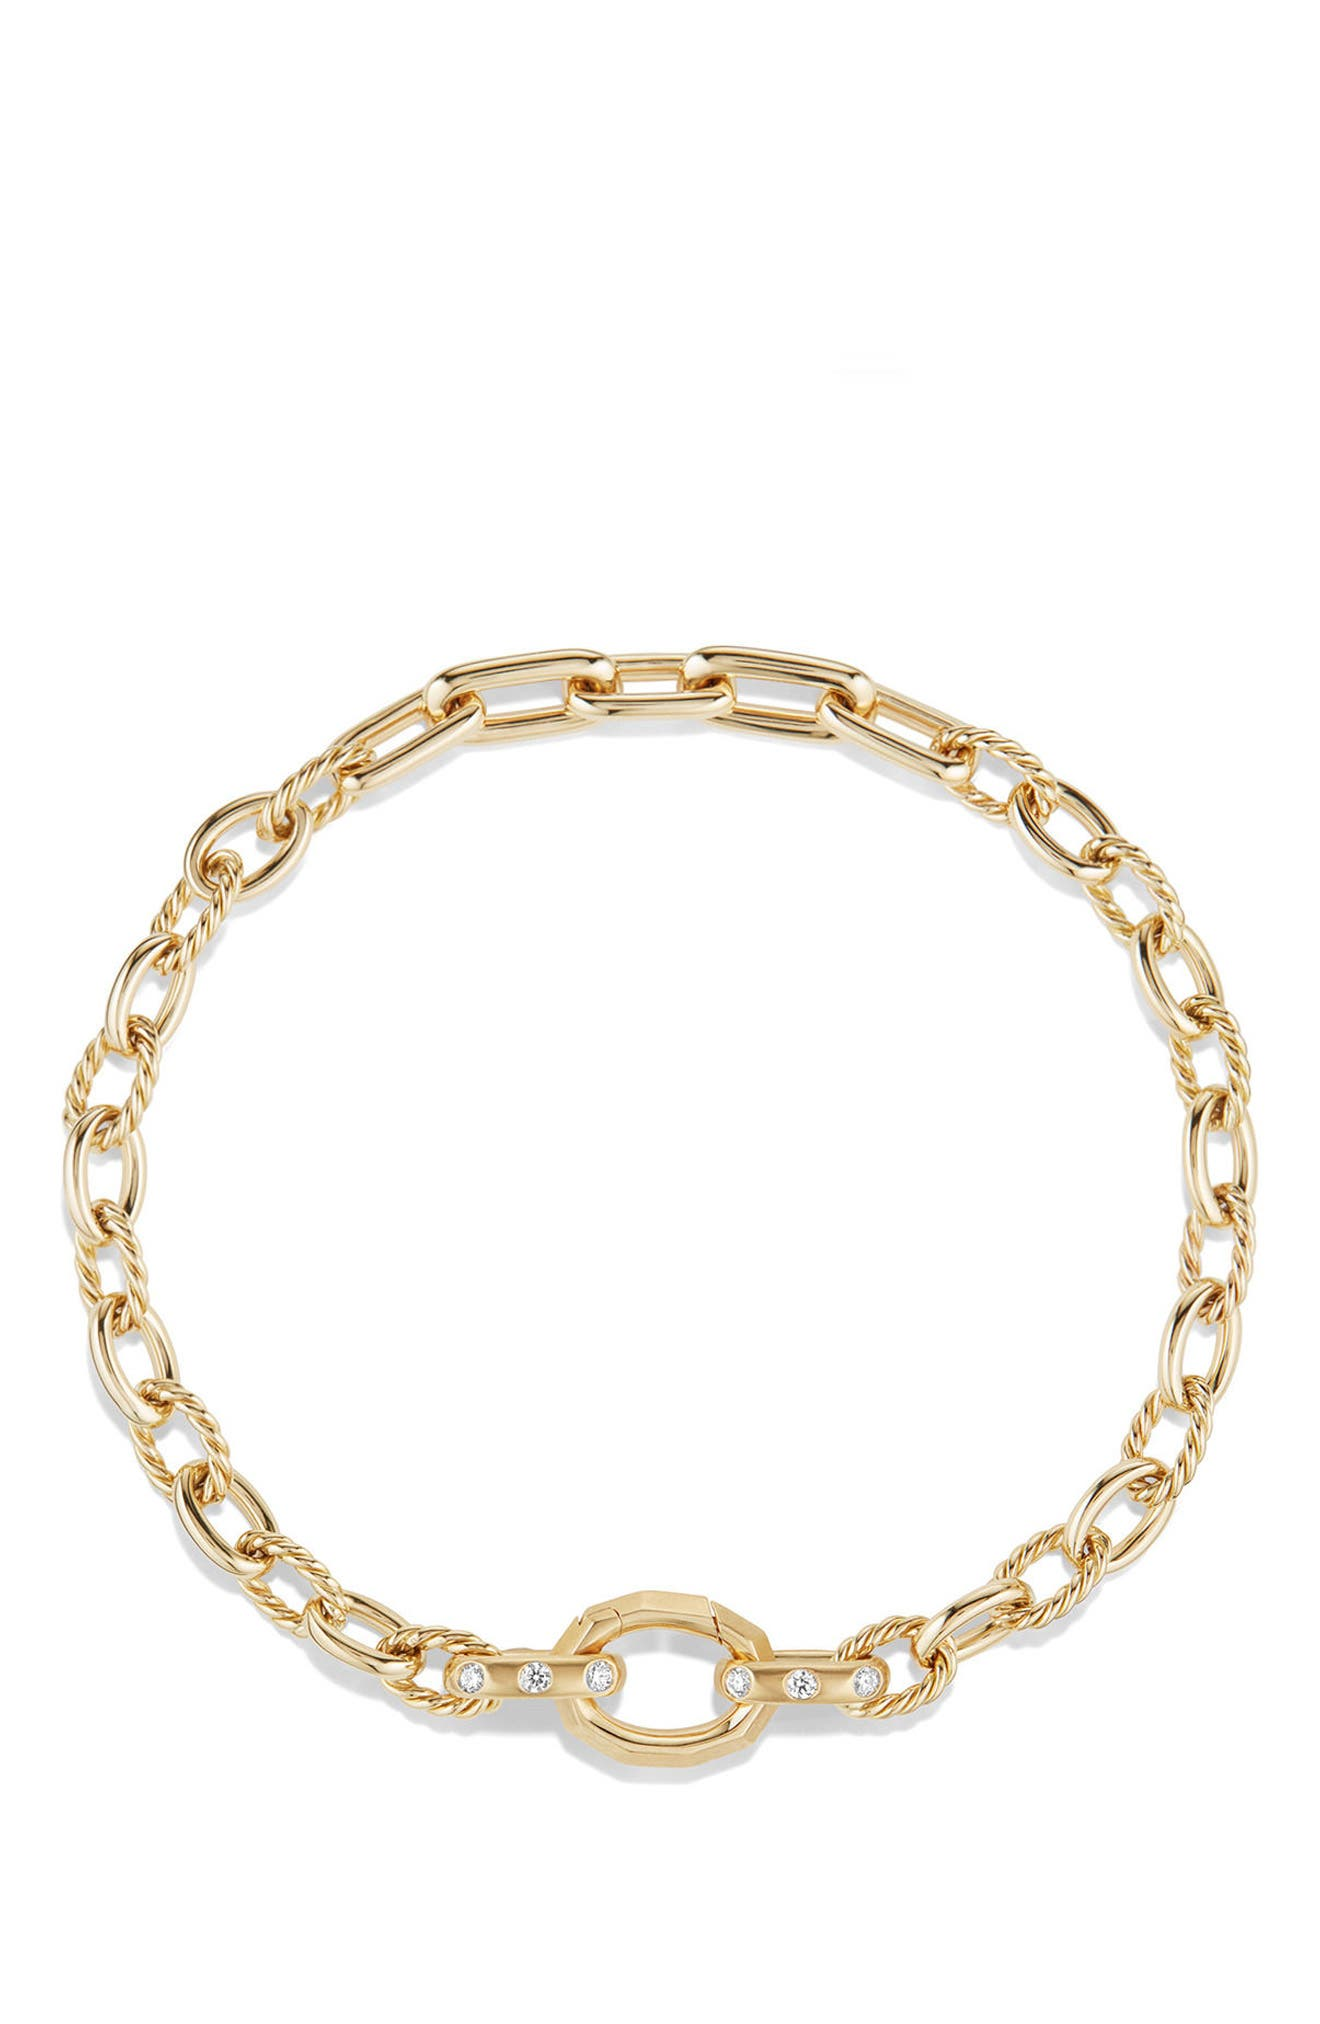 Stax Chain Bracelet with Diamonds in 18K Gold,                             Alternate thumbnail 2, color,                             Yellow Gold/ Diamond